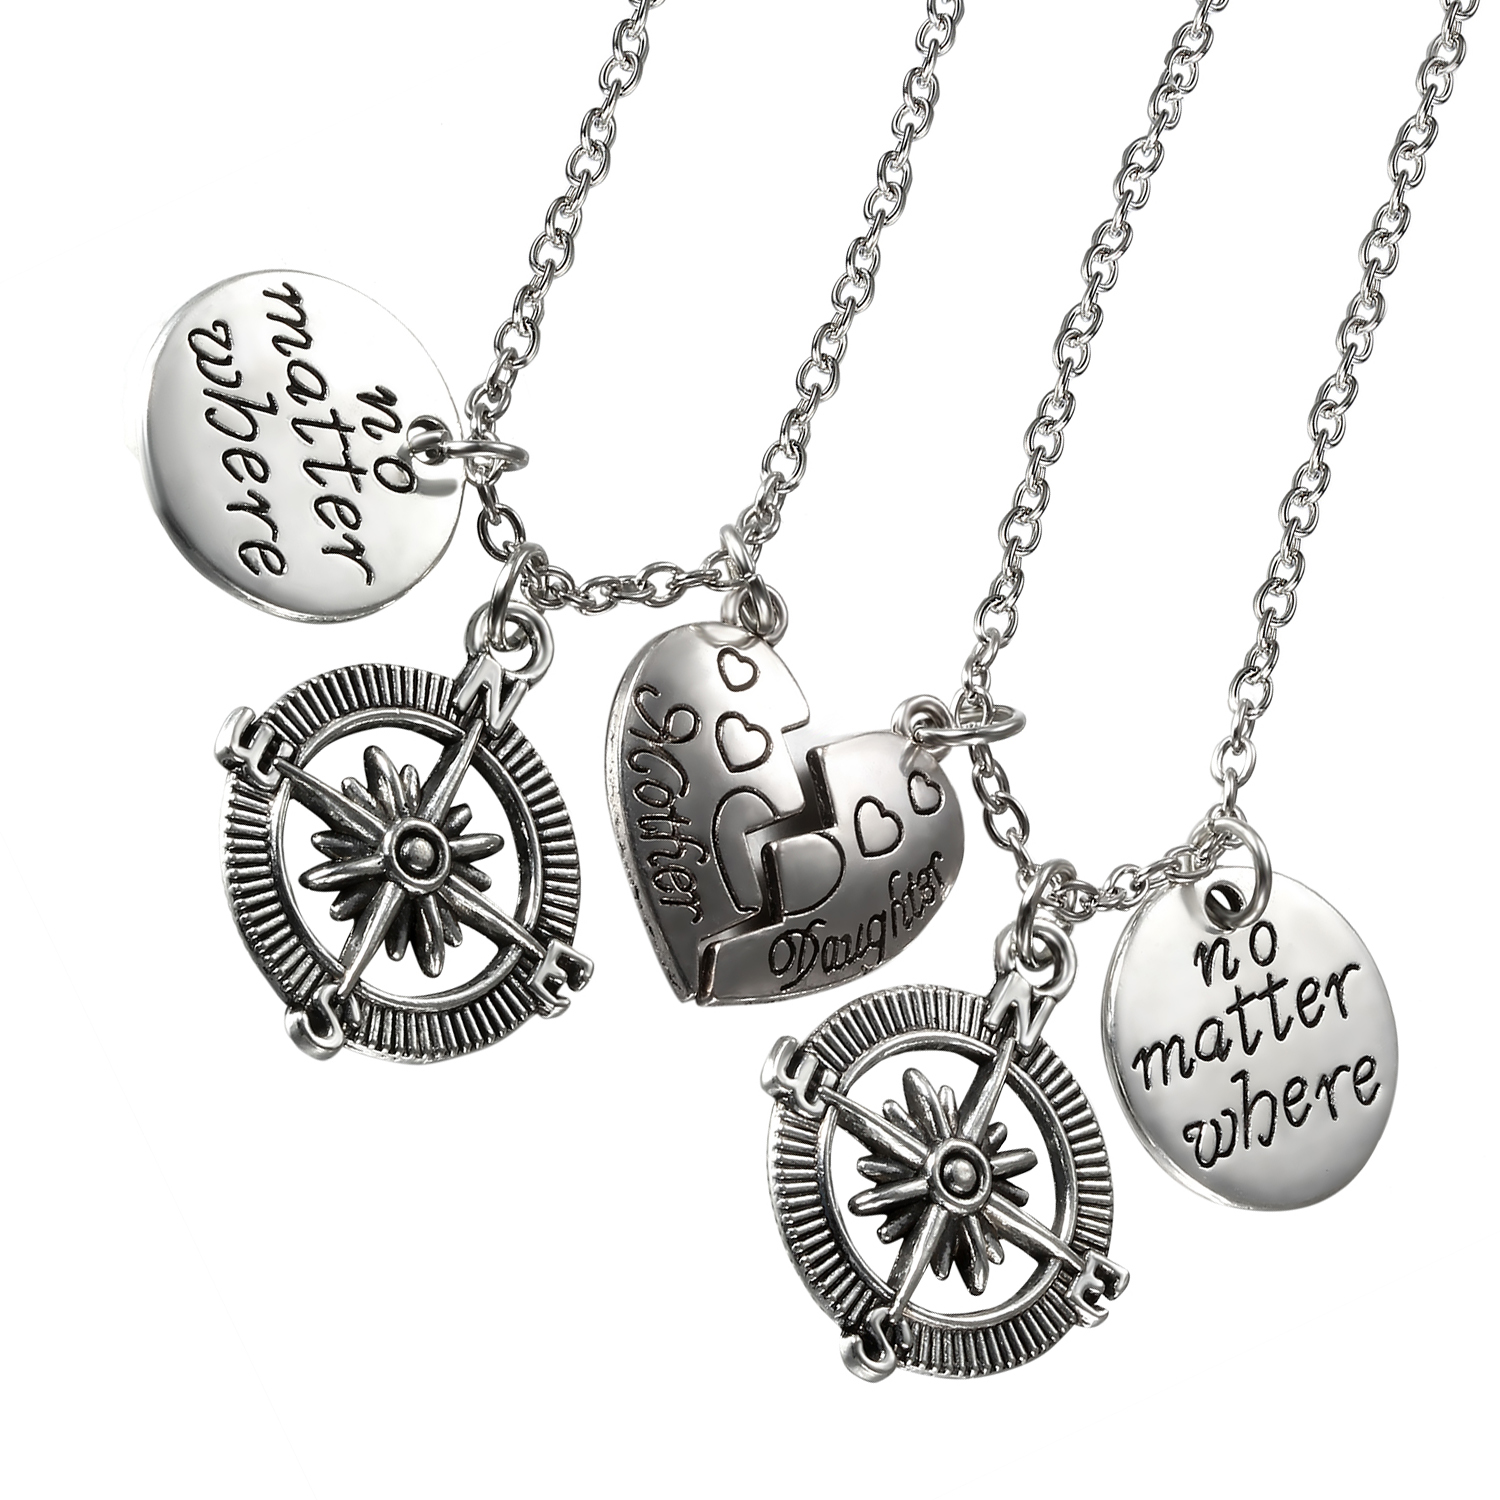 Aroncent 2PCS No Matter Where Compass Mother Daughter Love Heart Matching Pendant Necklaces Gift Set